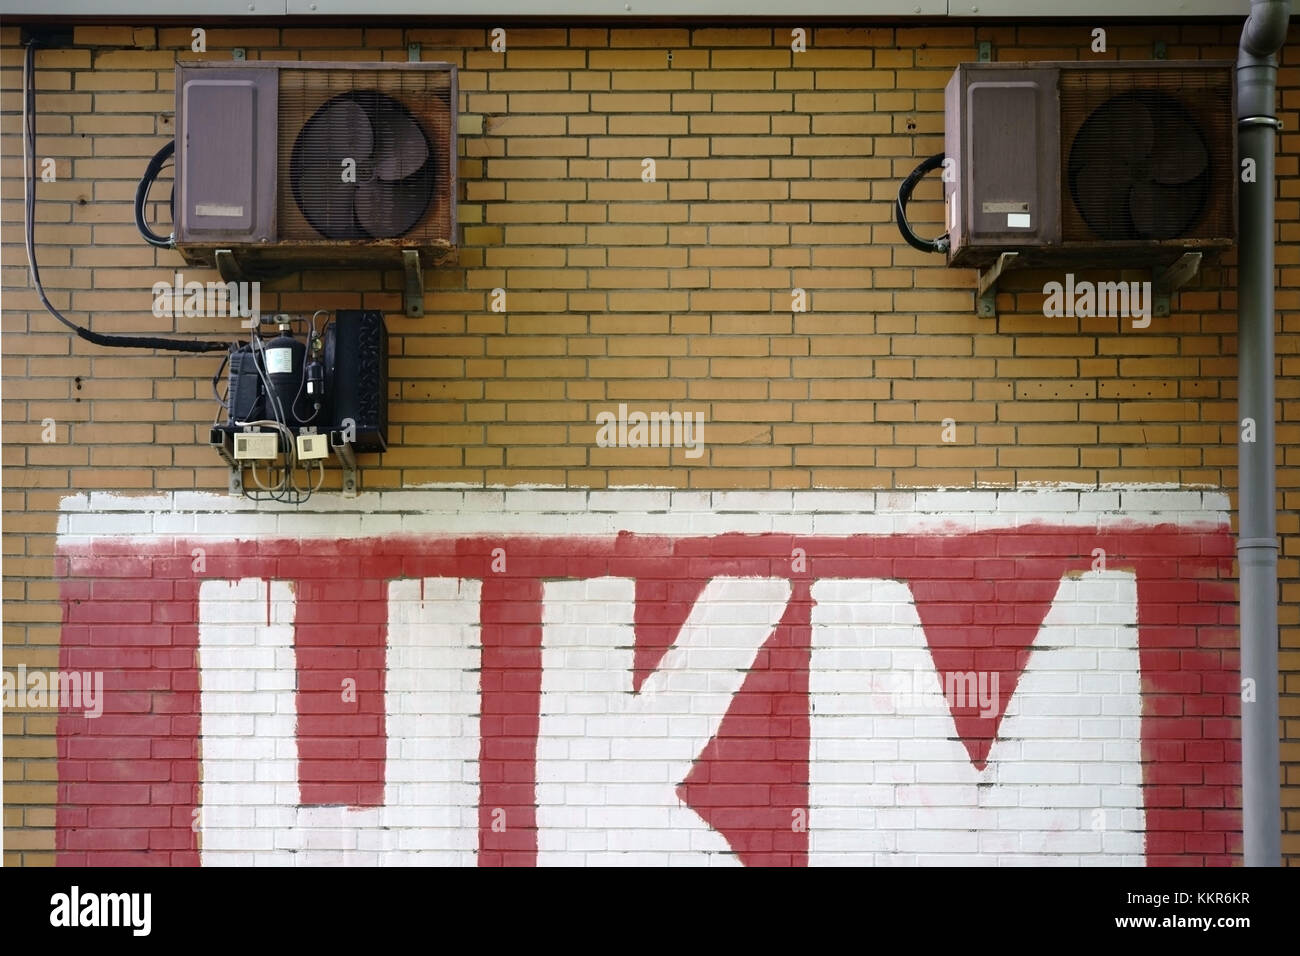 A painted barrack with brick walls and rusted ventilation. - Stock Image